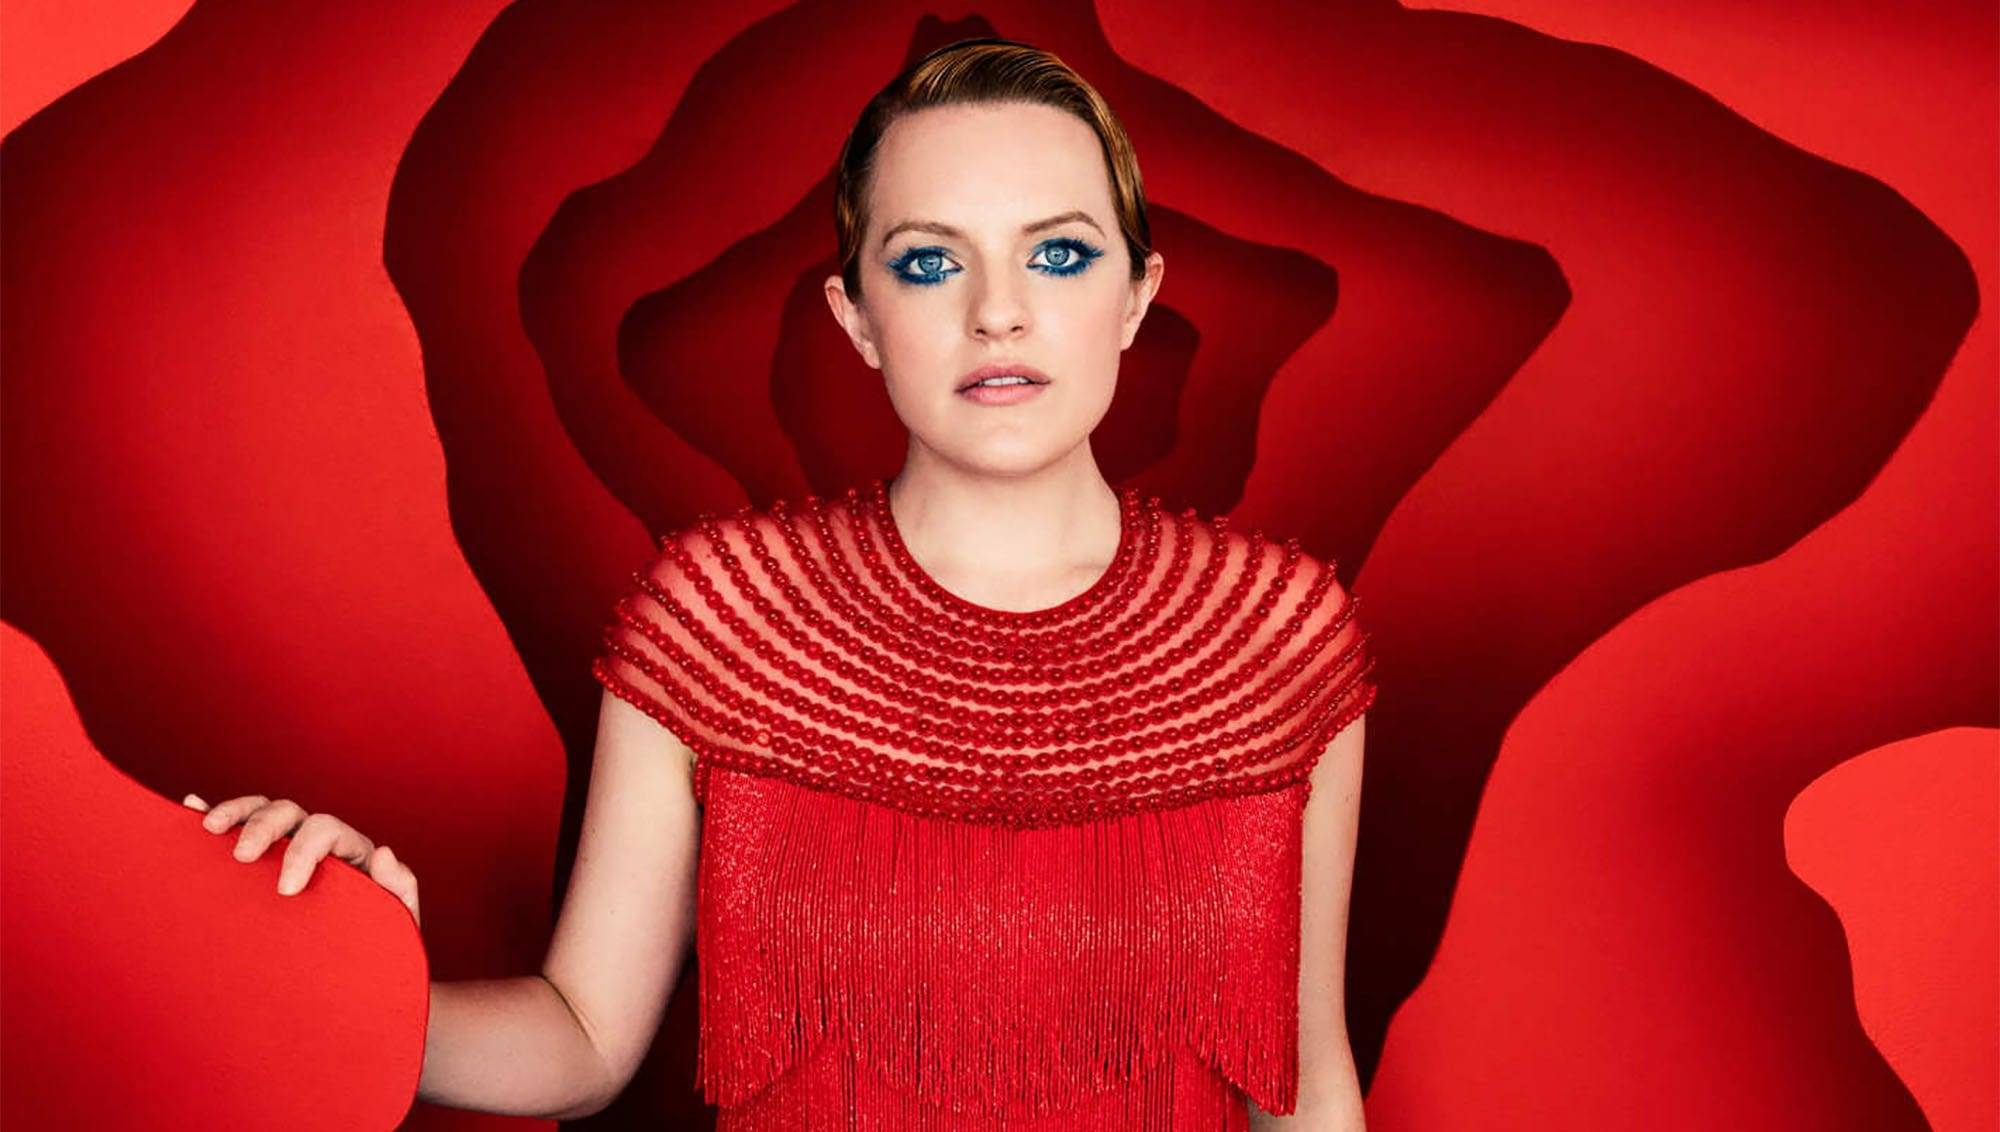 Elisabeth Moss Biography, Height, Weight, Age, Size, Family, Net Worth - Elisabeth Moss Biography Height Weight Age Size Family Net Worth